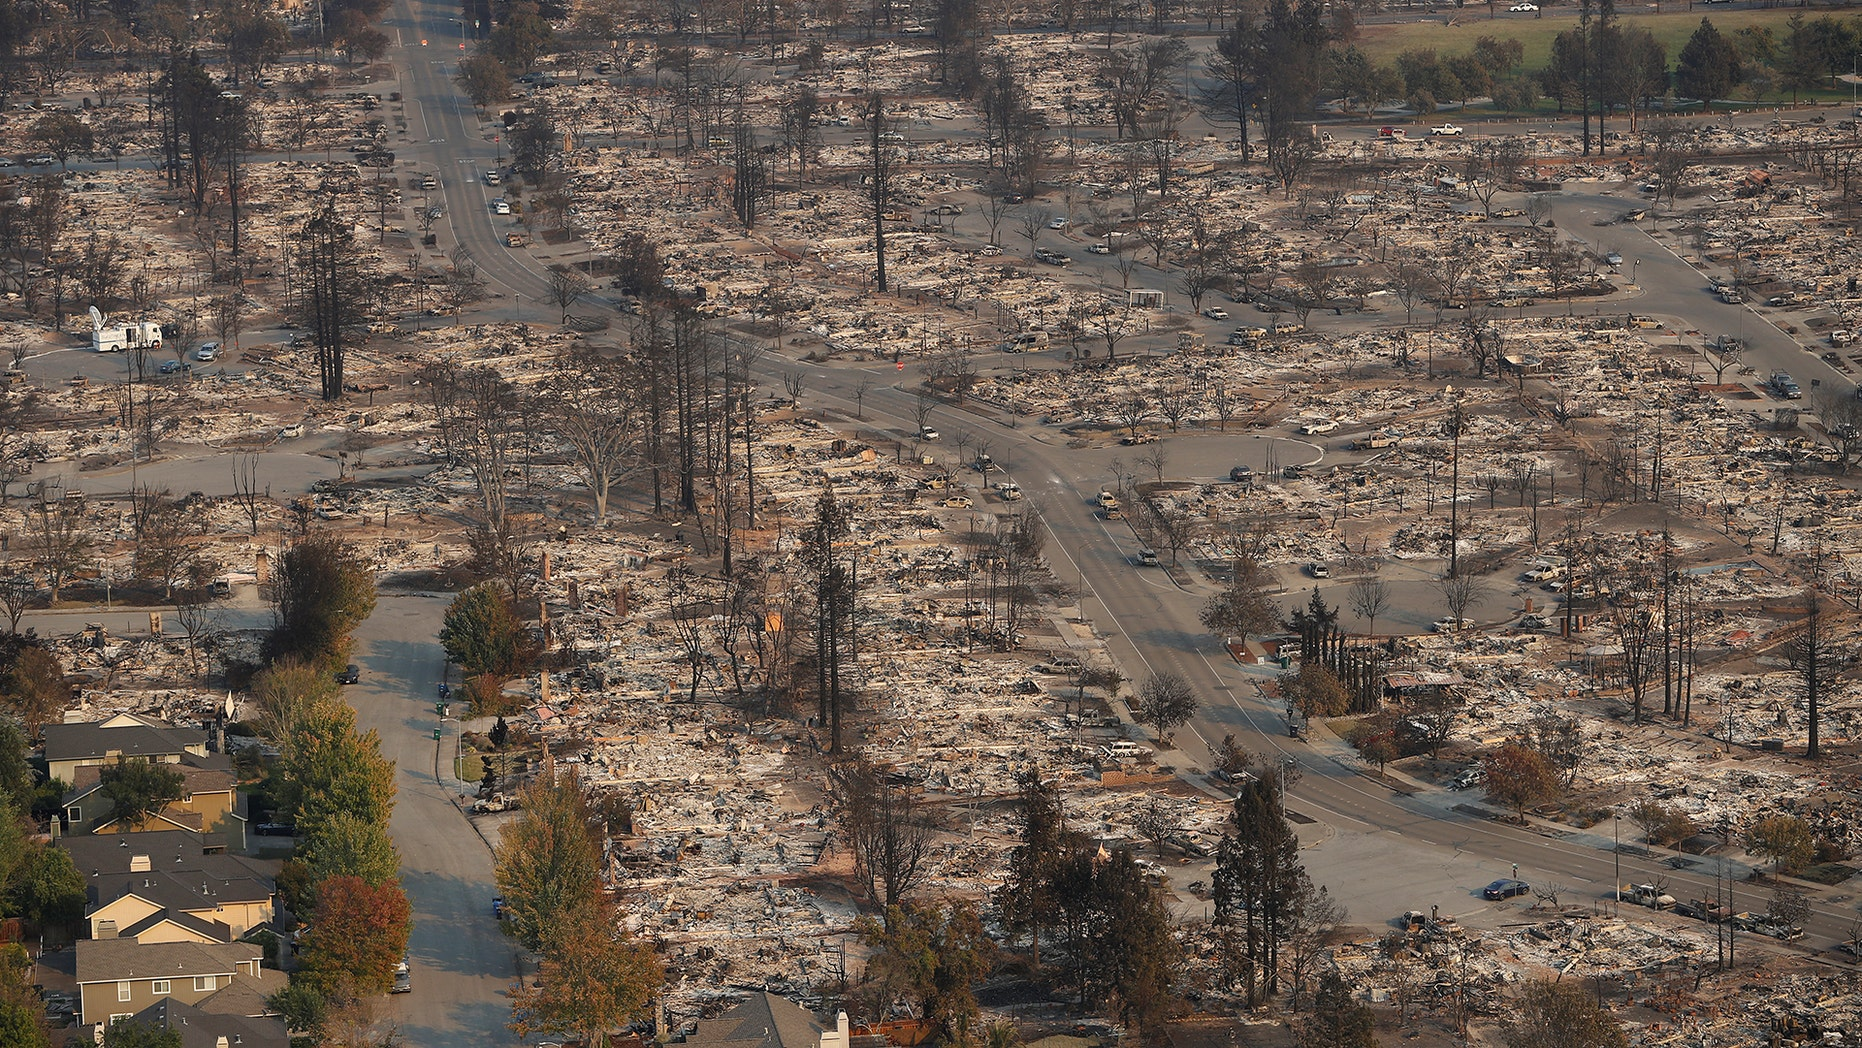 PG&E Not To Blame For Deadly Tubbs Fire